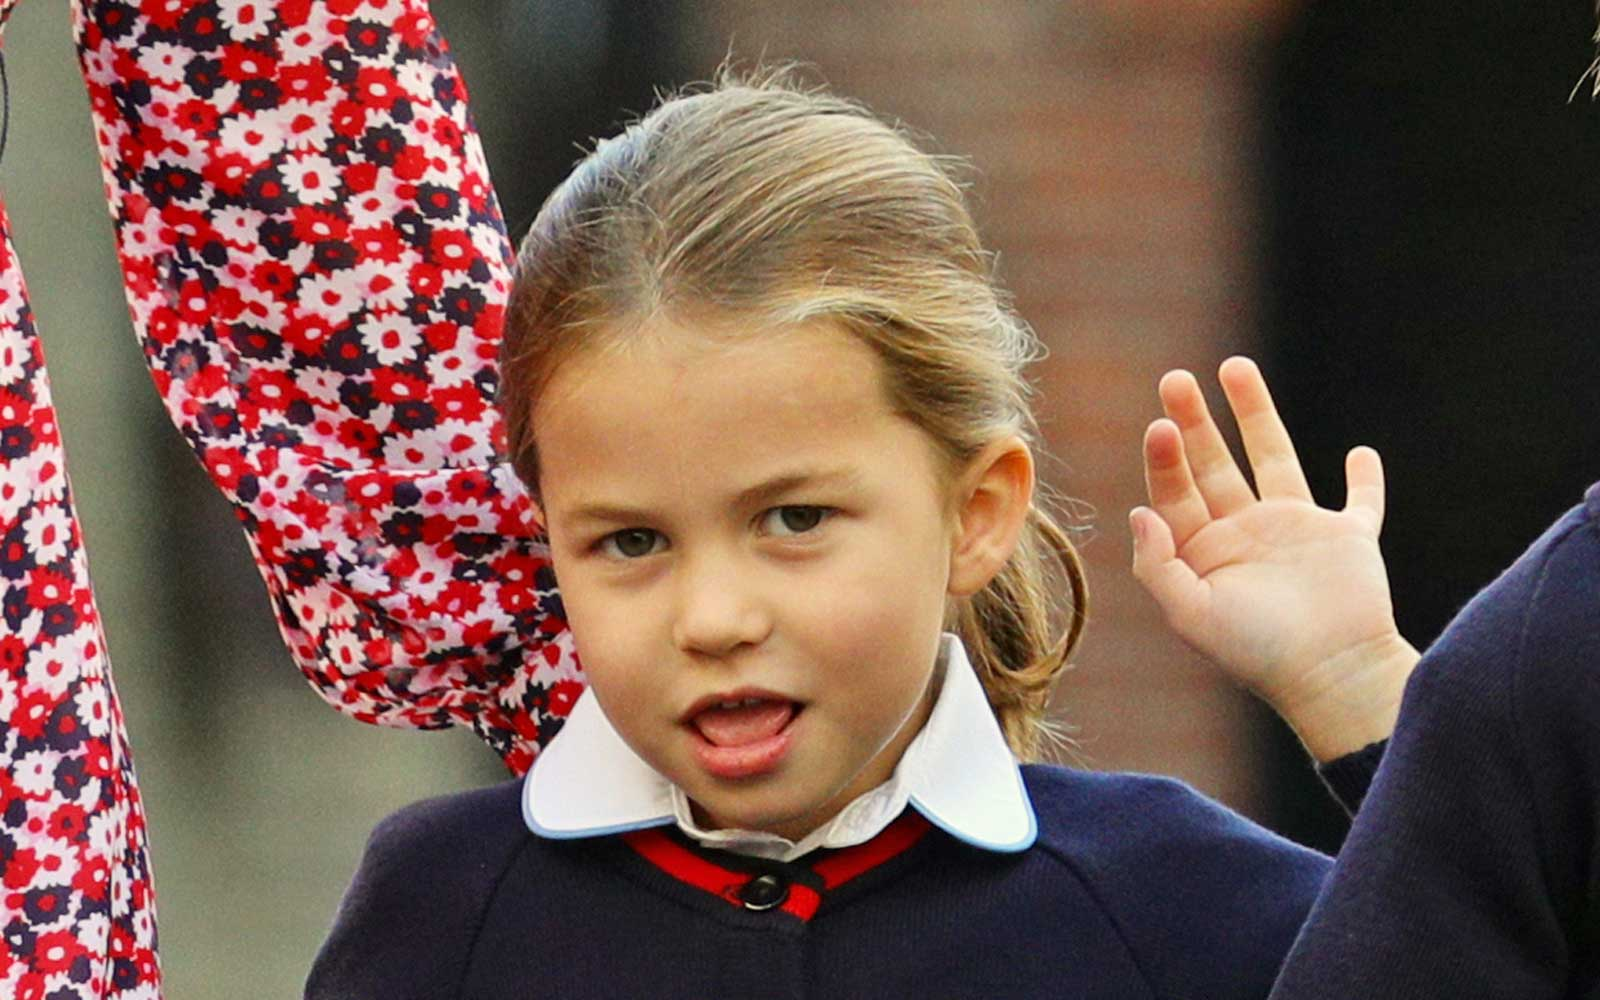 Princess Charlotte and Prince George Arrive for Their First Day of School in Adorable Video